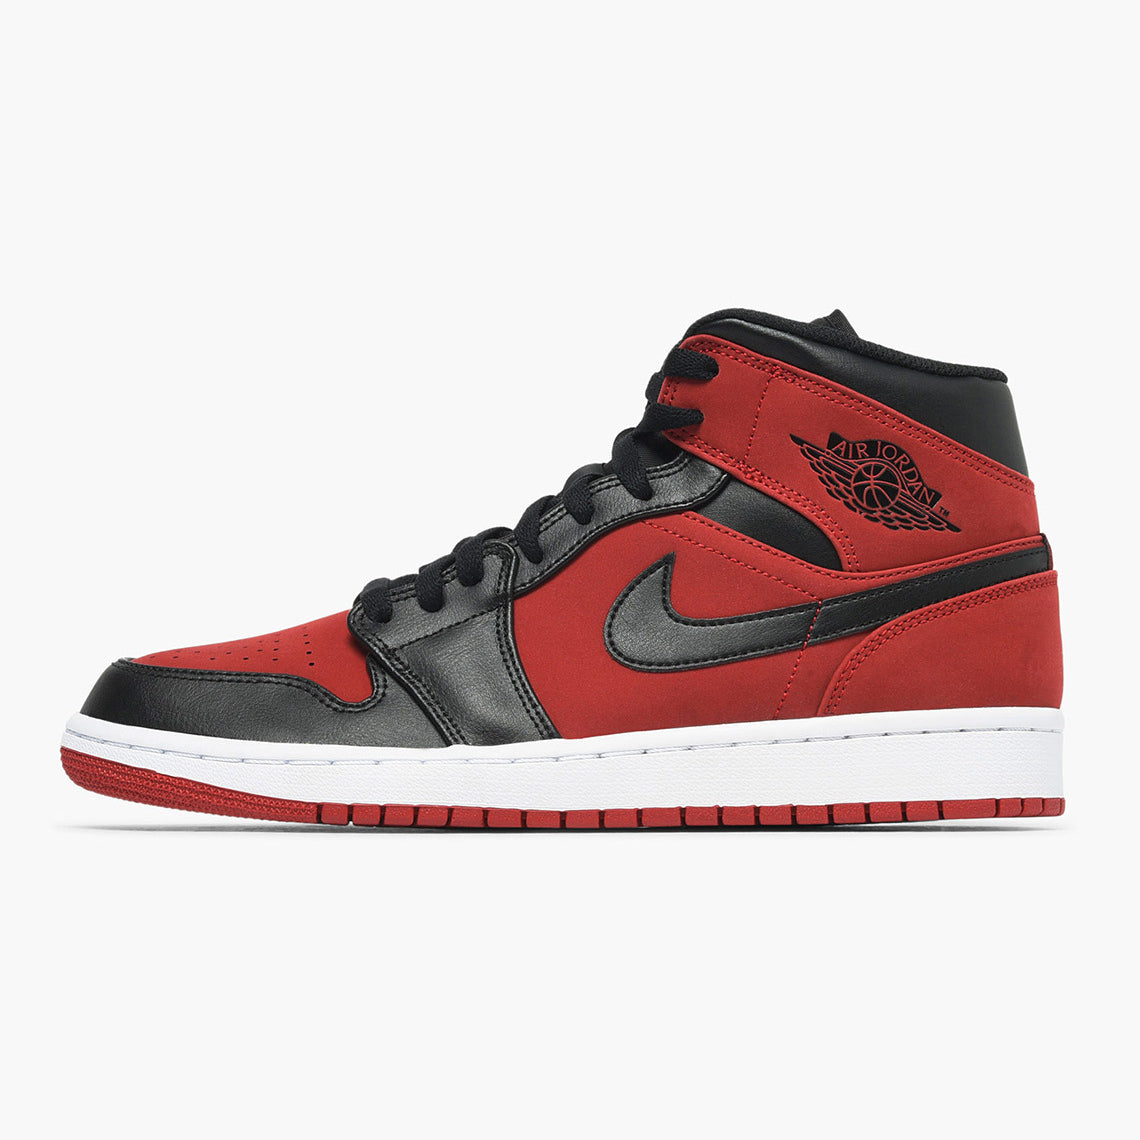 ad2db58e2732 Nike Air Jordan 1 Mid GYM RED BLACK-WHITE (554724-610)